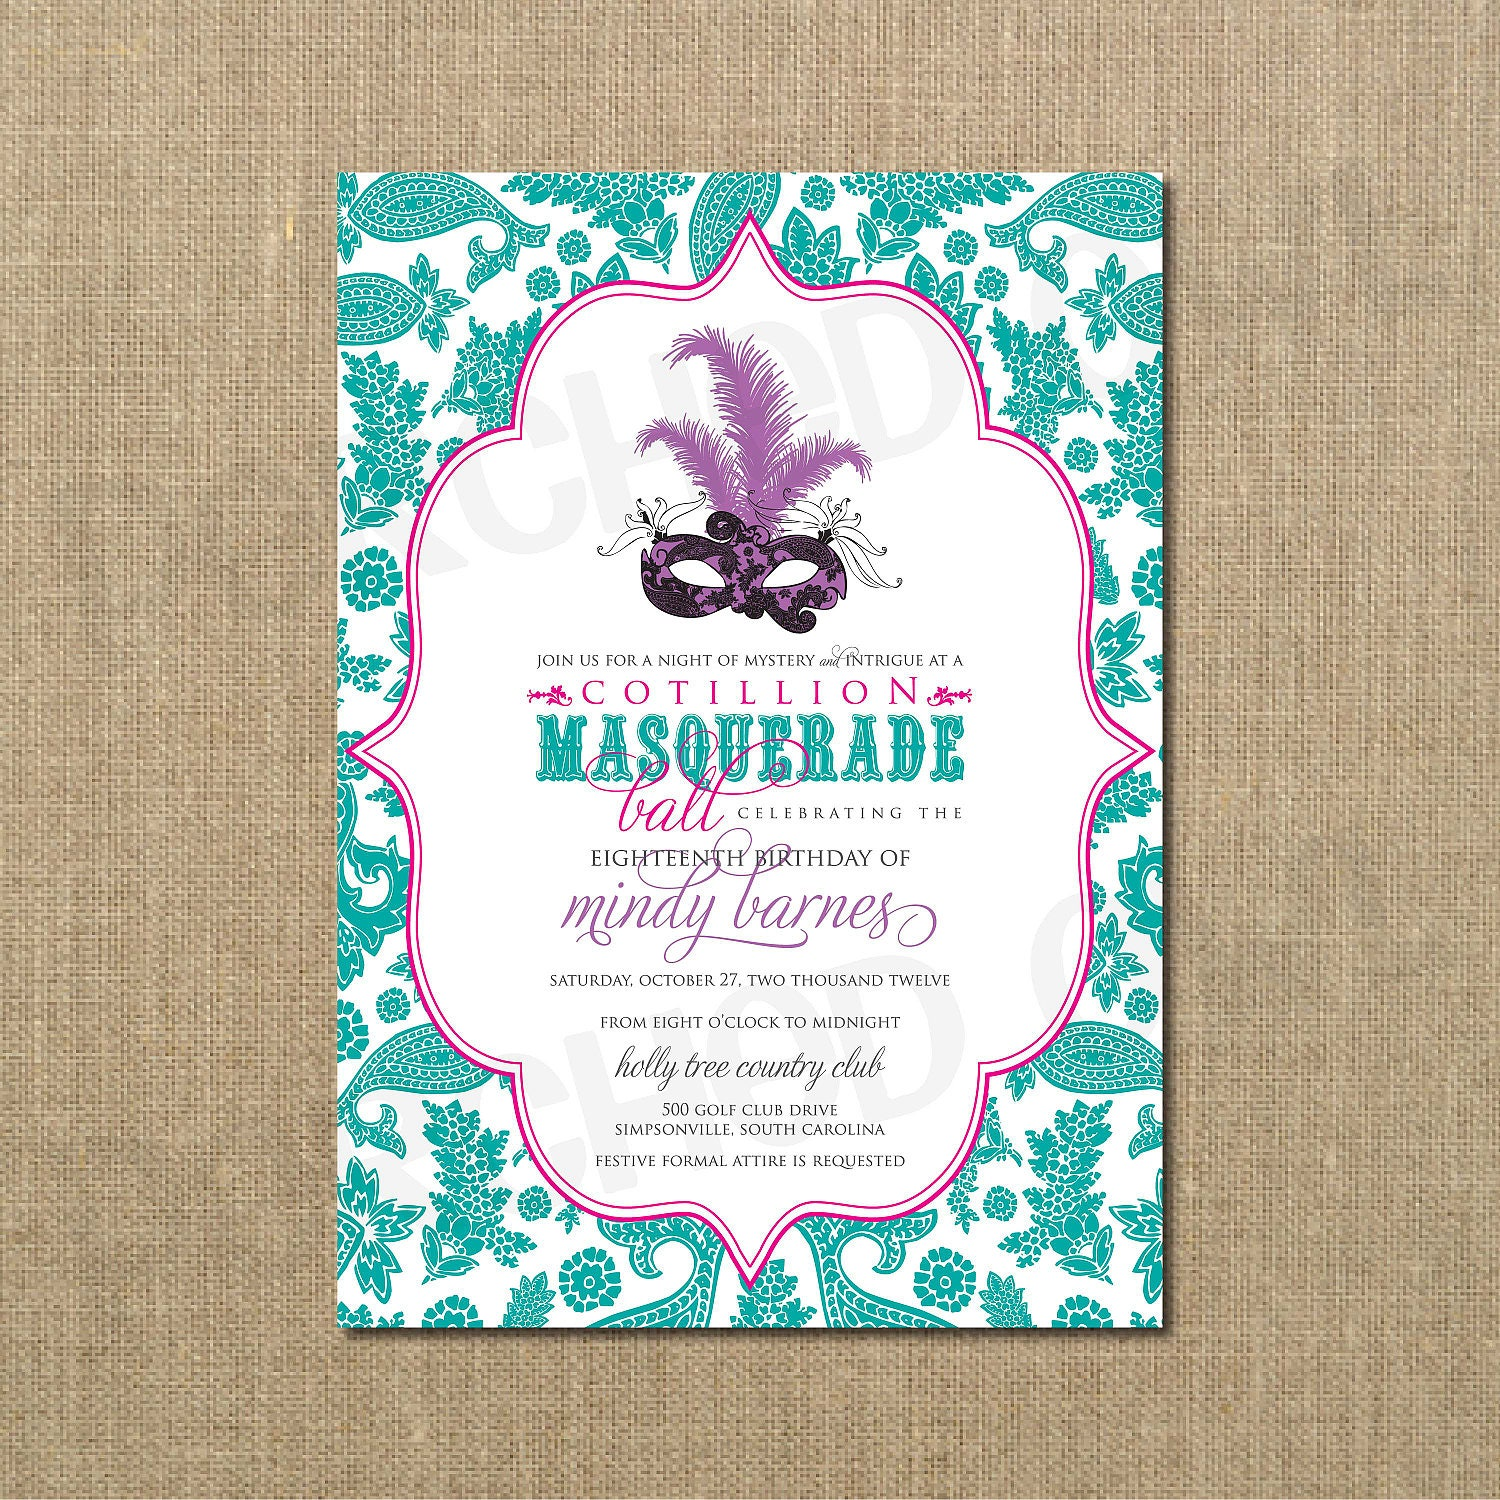 Masquerade Invitations For Sweet 16 was good invitation layout